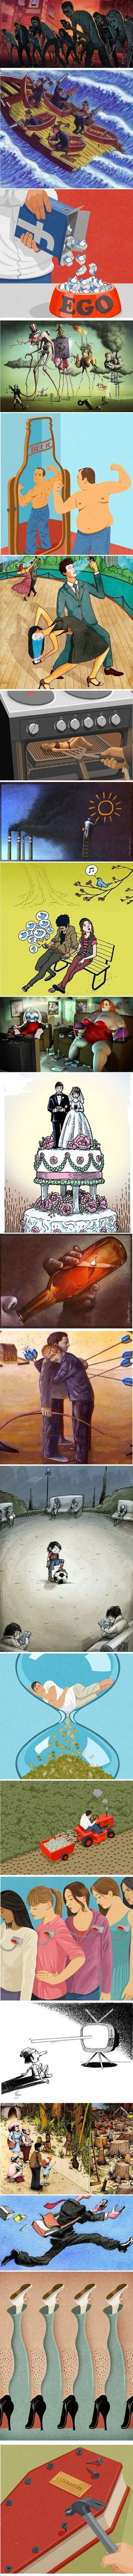 20 illustrations which prove that the world is a crazy place